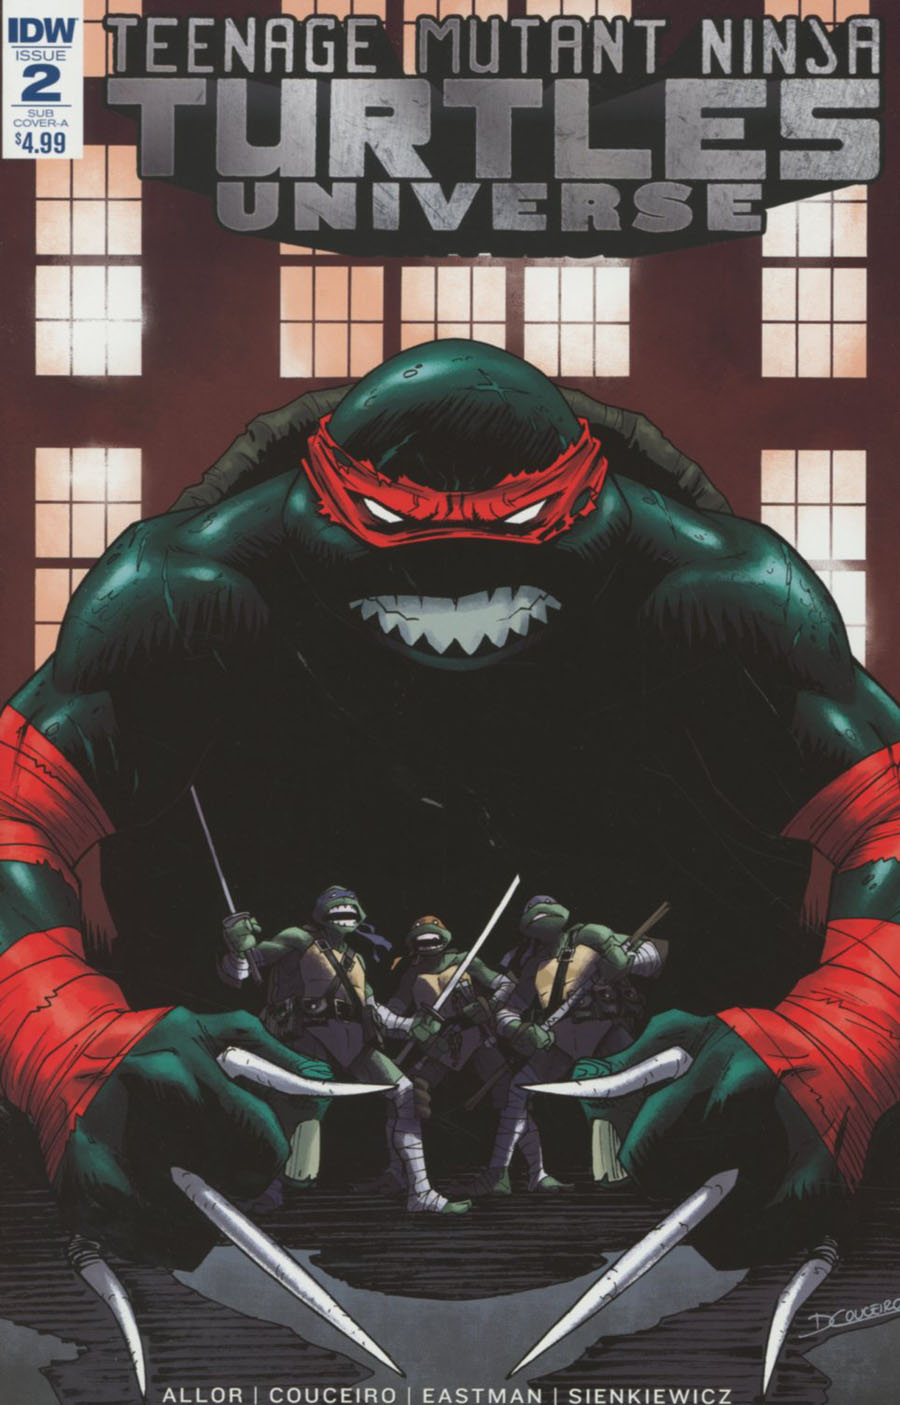 Teenage Mutant Ninja Turtles Universe #2 Cover B Variant Damian Couceiro Subscription Cover